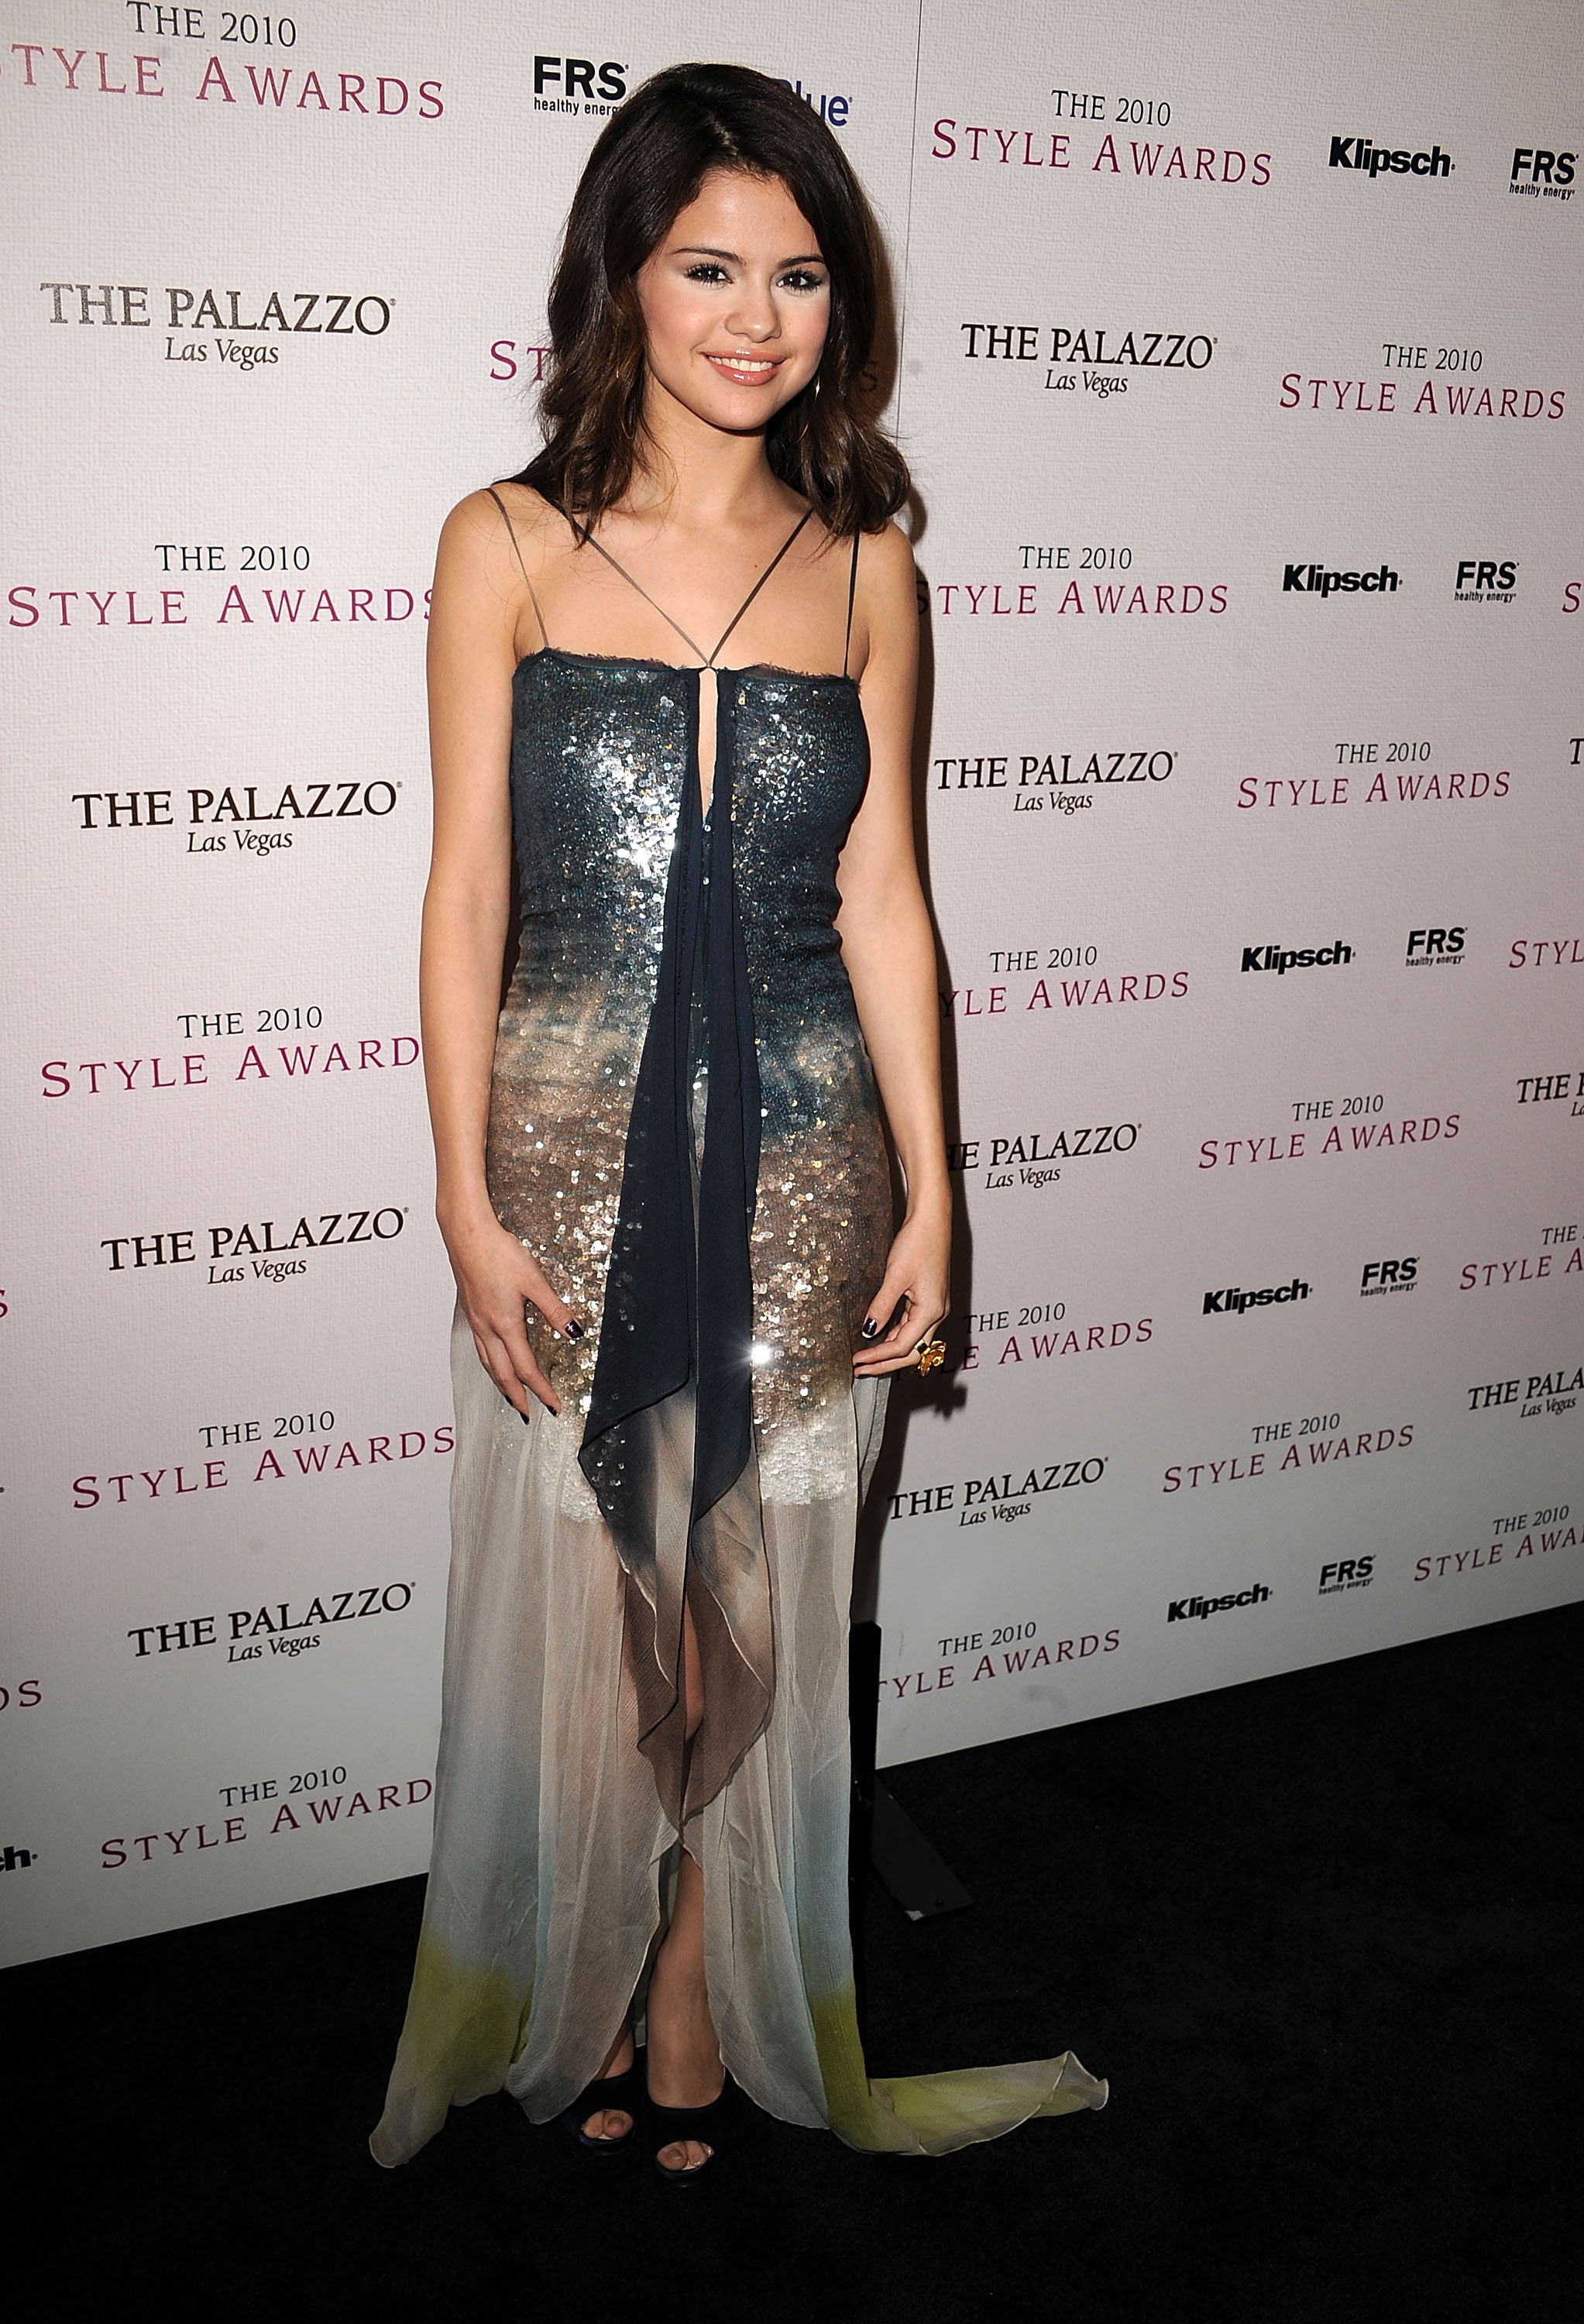 Selena Gomez glowed in a glittery sequined gown.